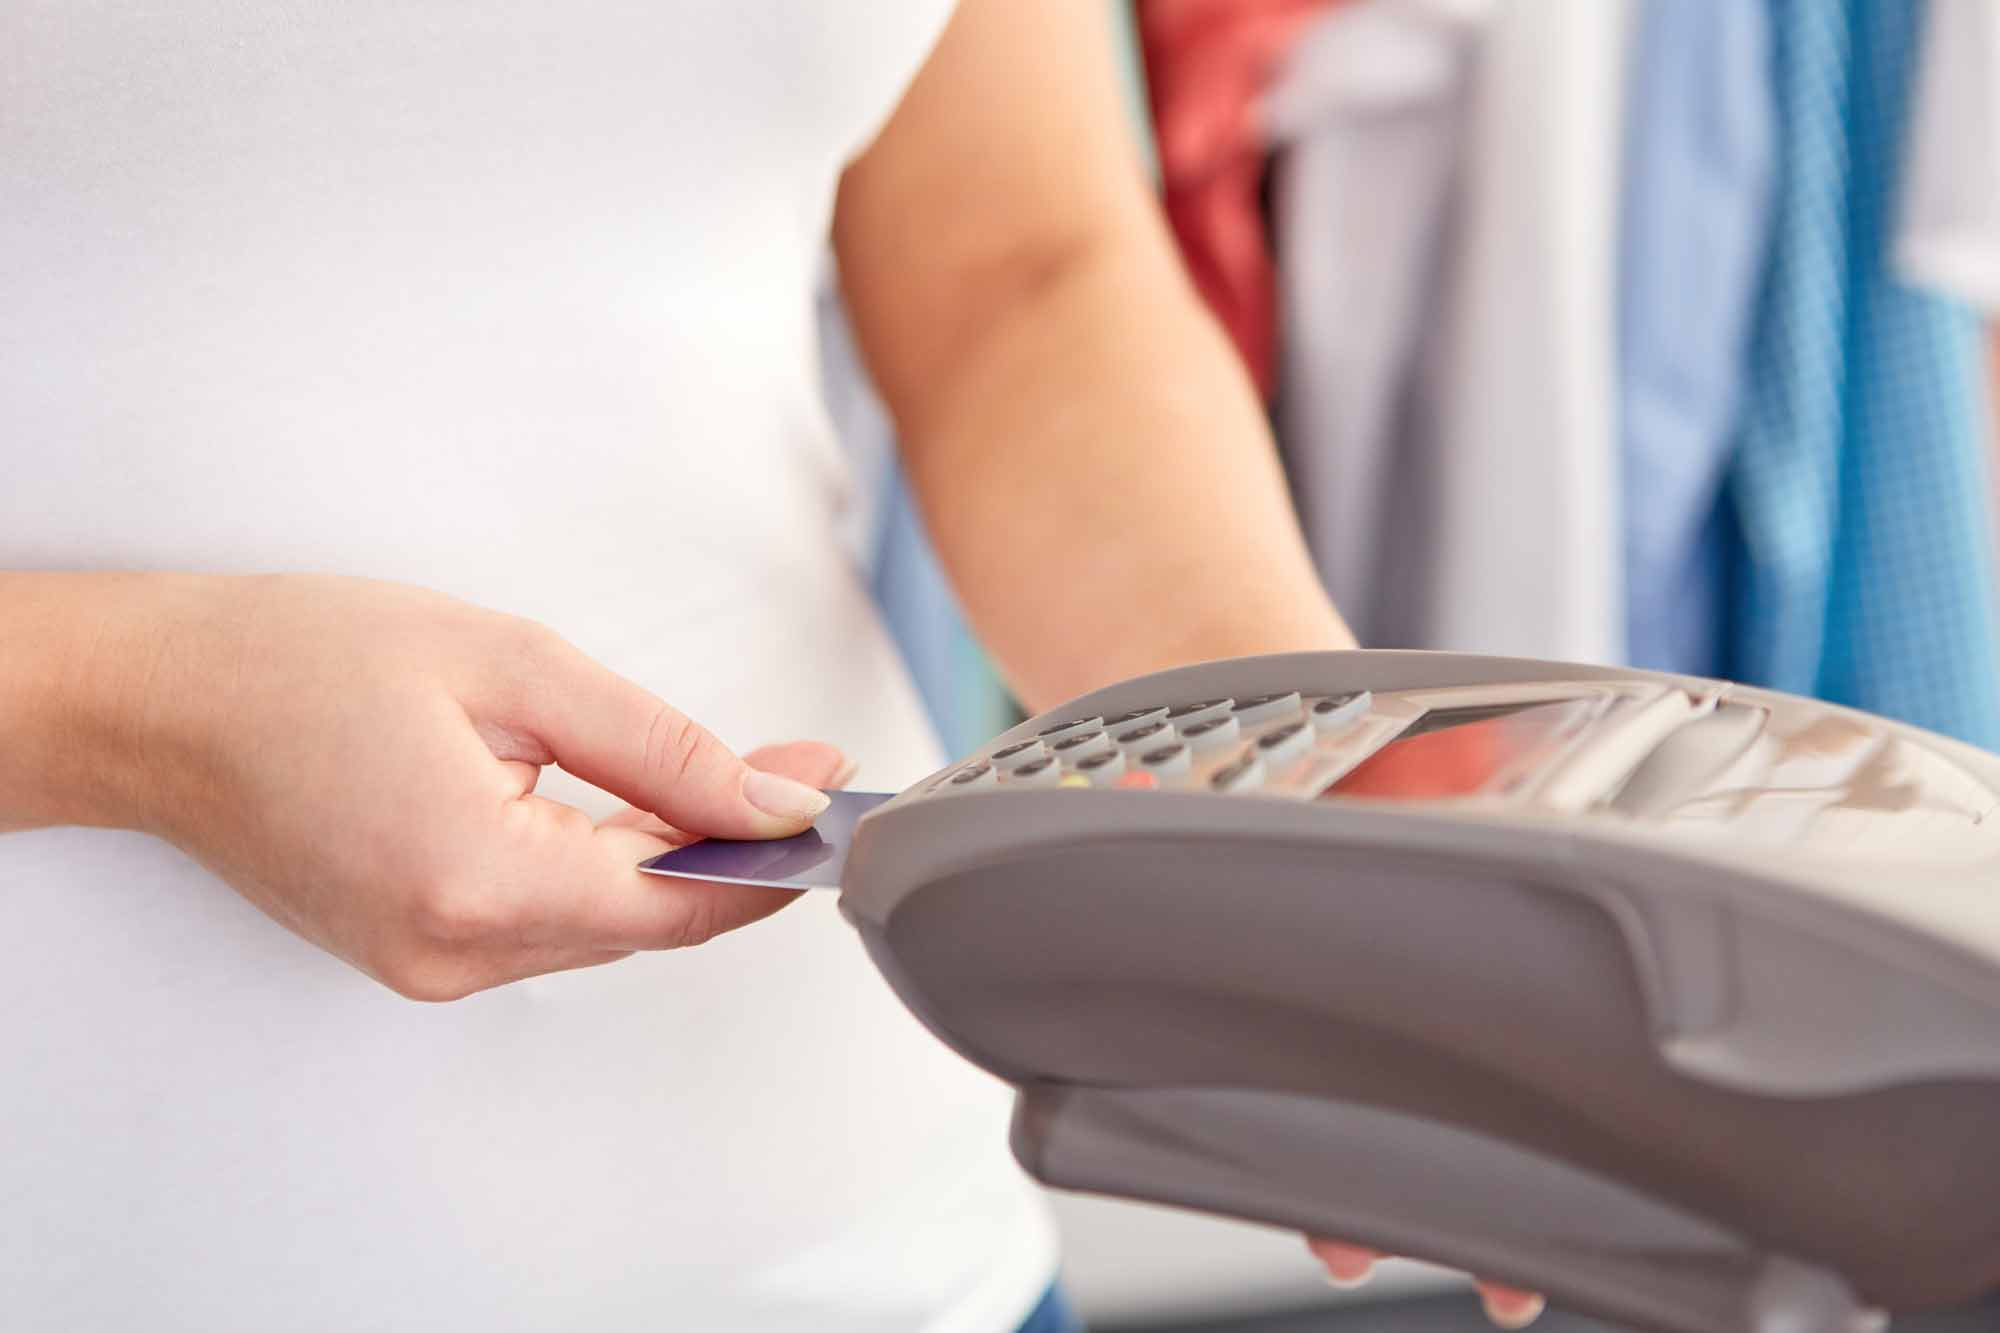 You'll make more money with a credit card processing job